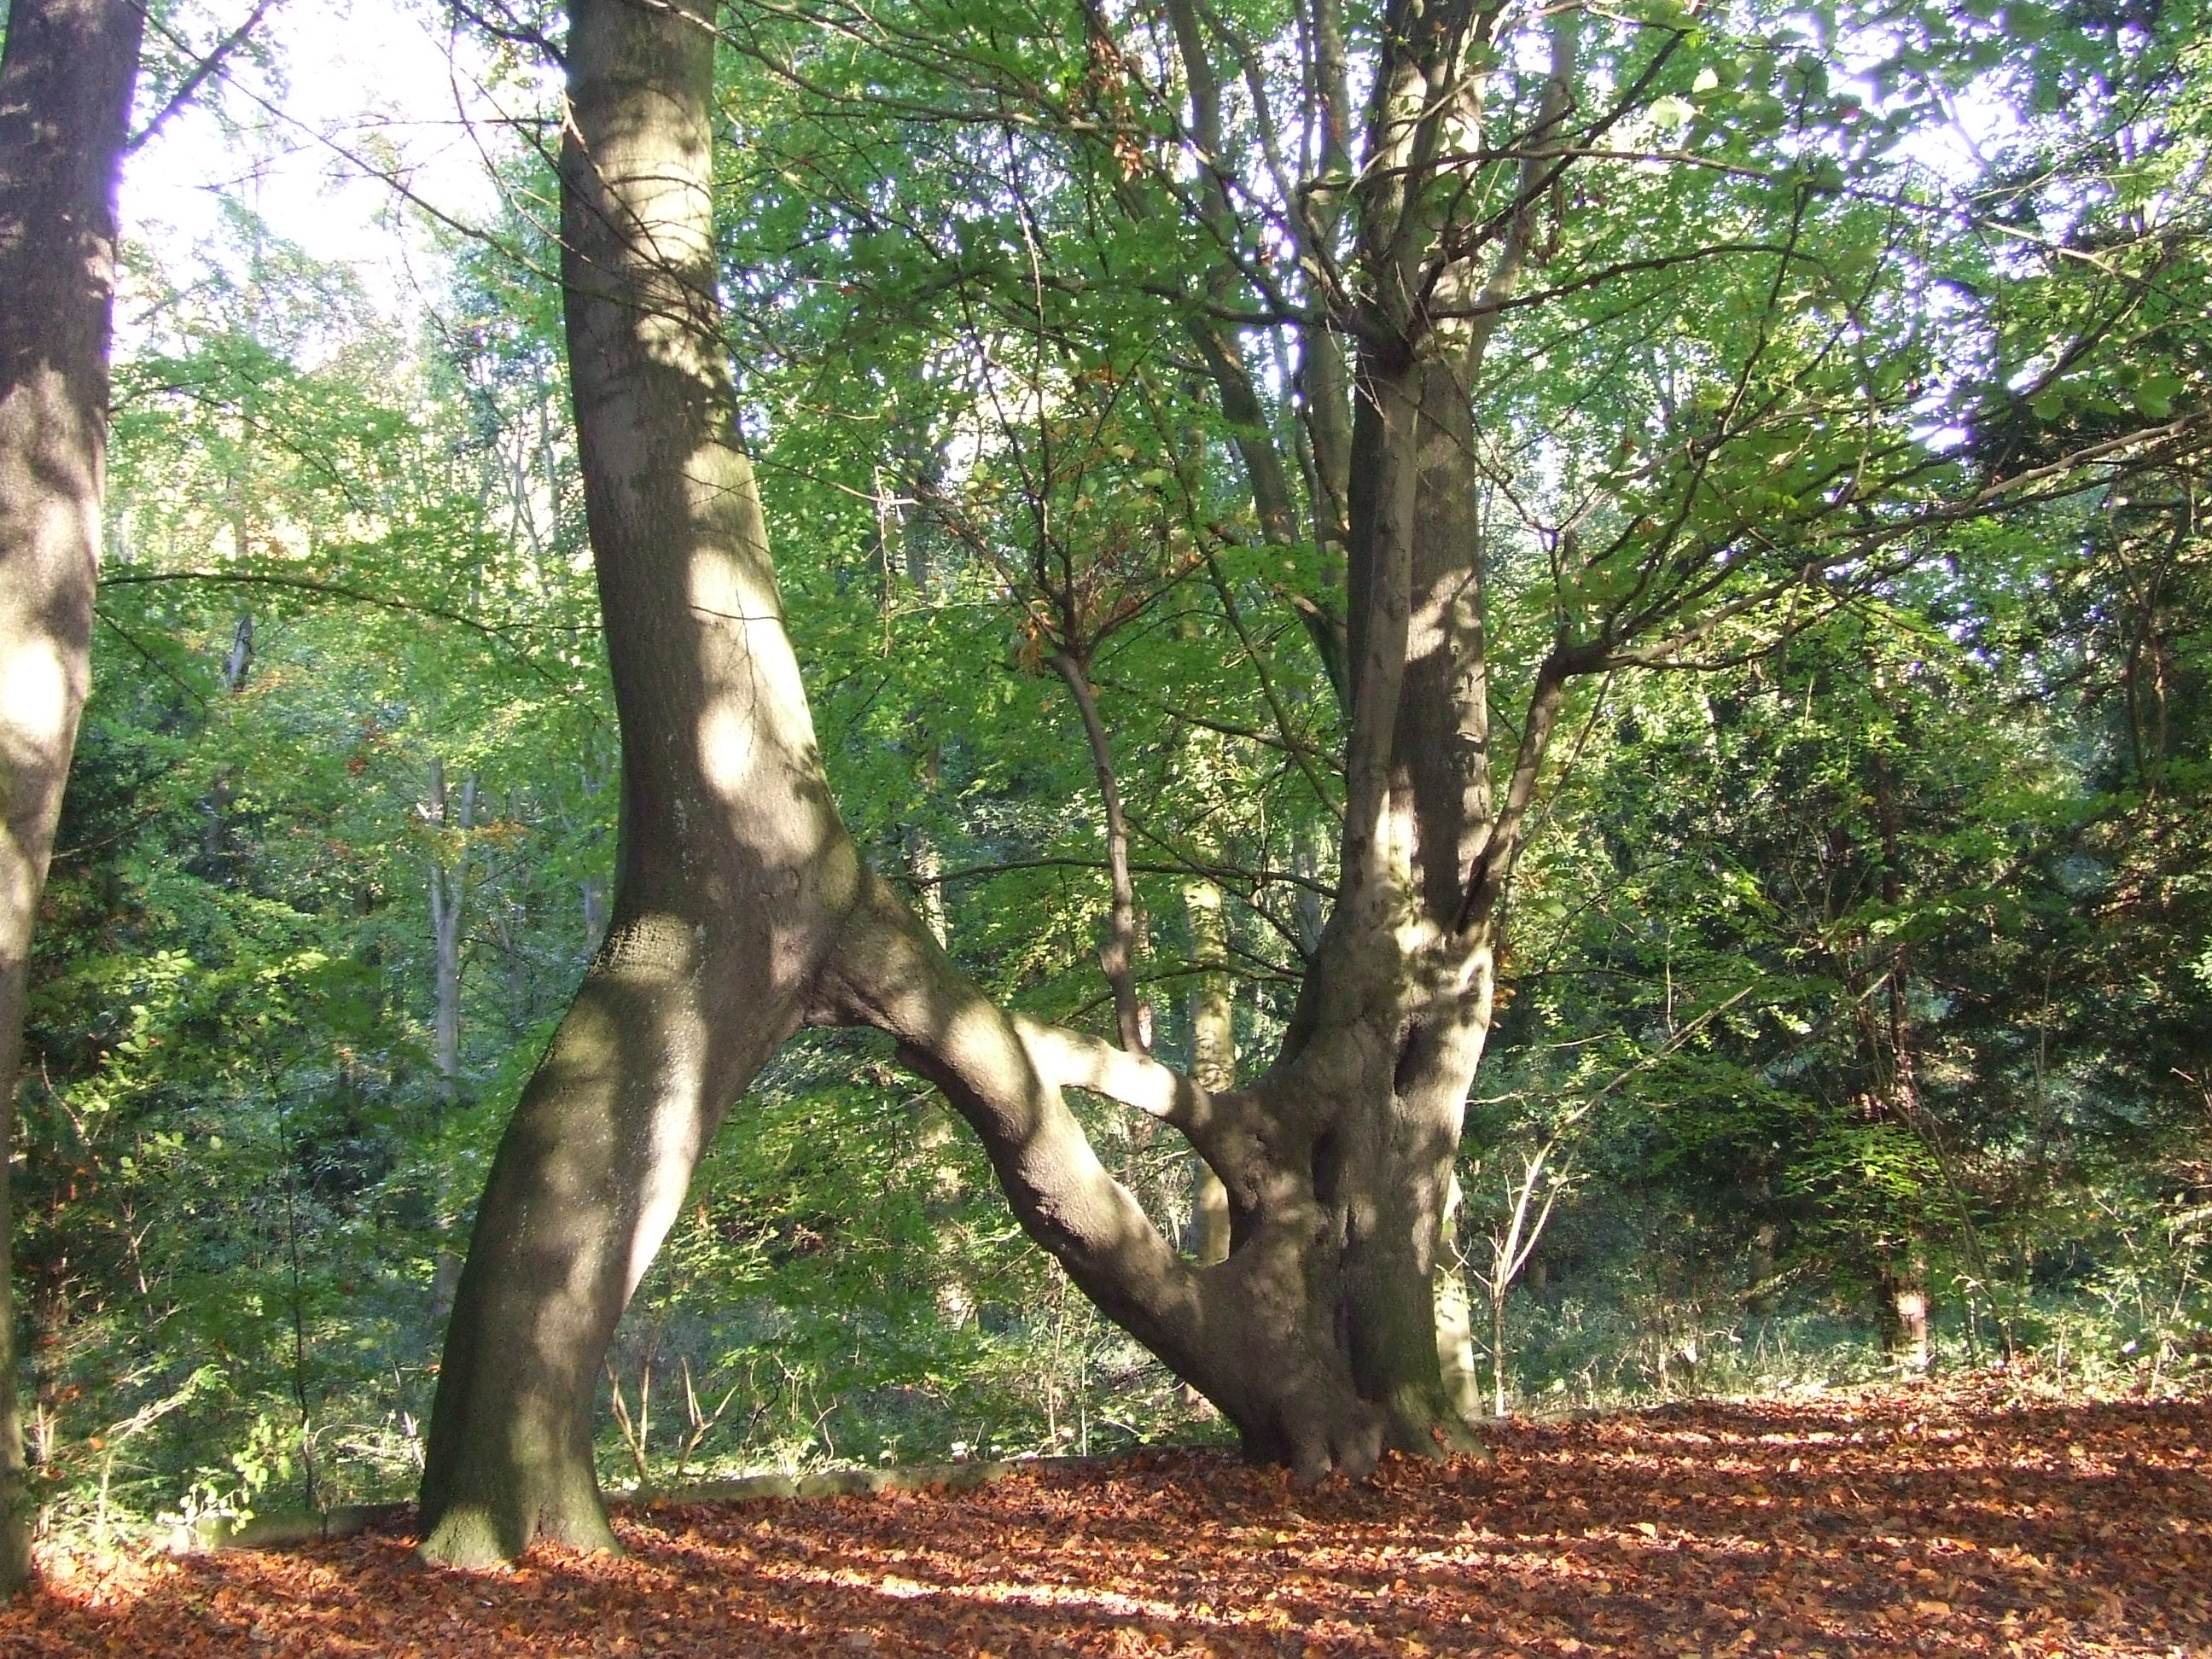 Nellie's tree, the Woodland Trust England's tree of the year 2018